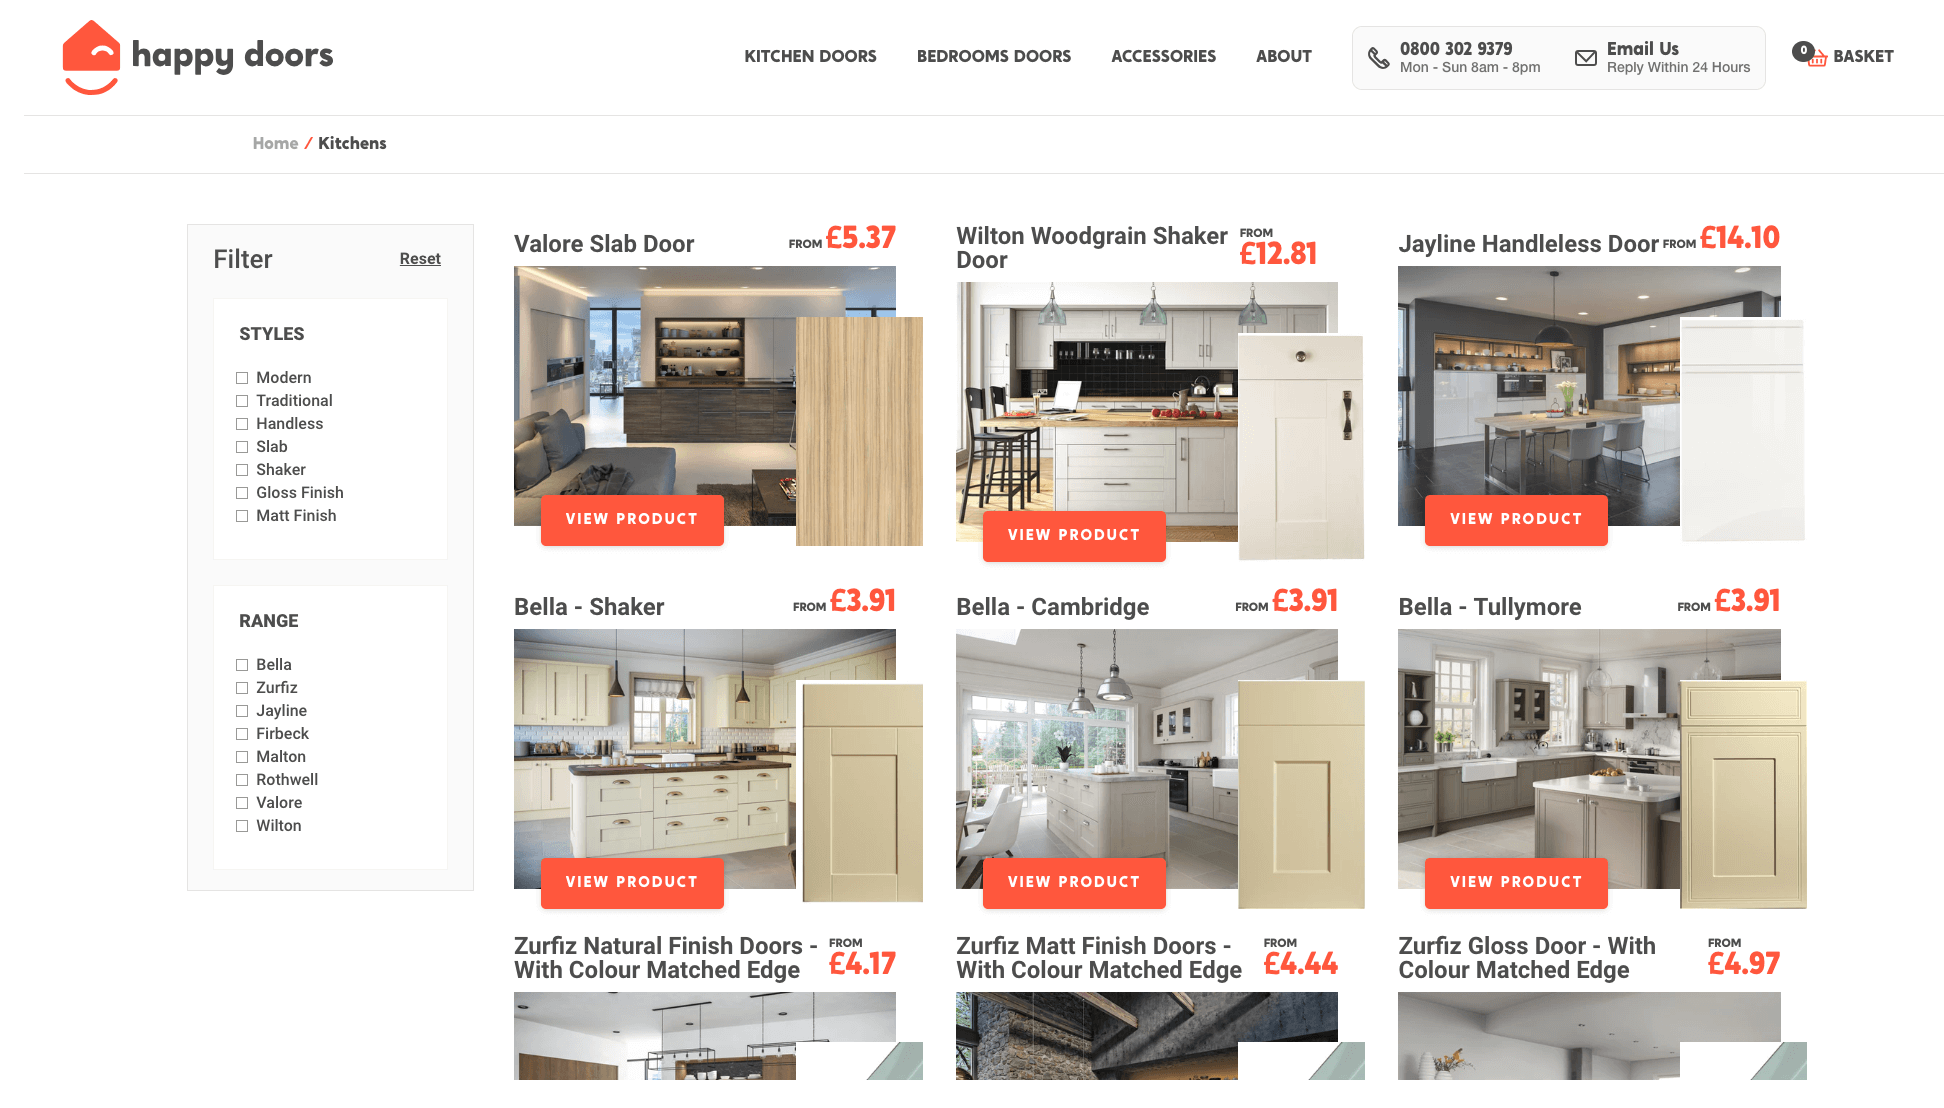 Happy Doors Product Listing Page